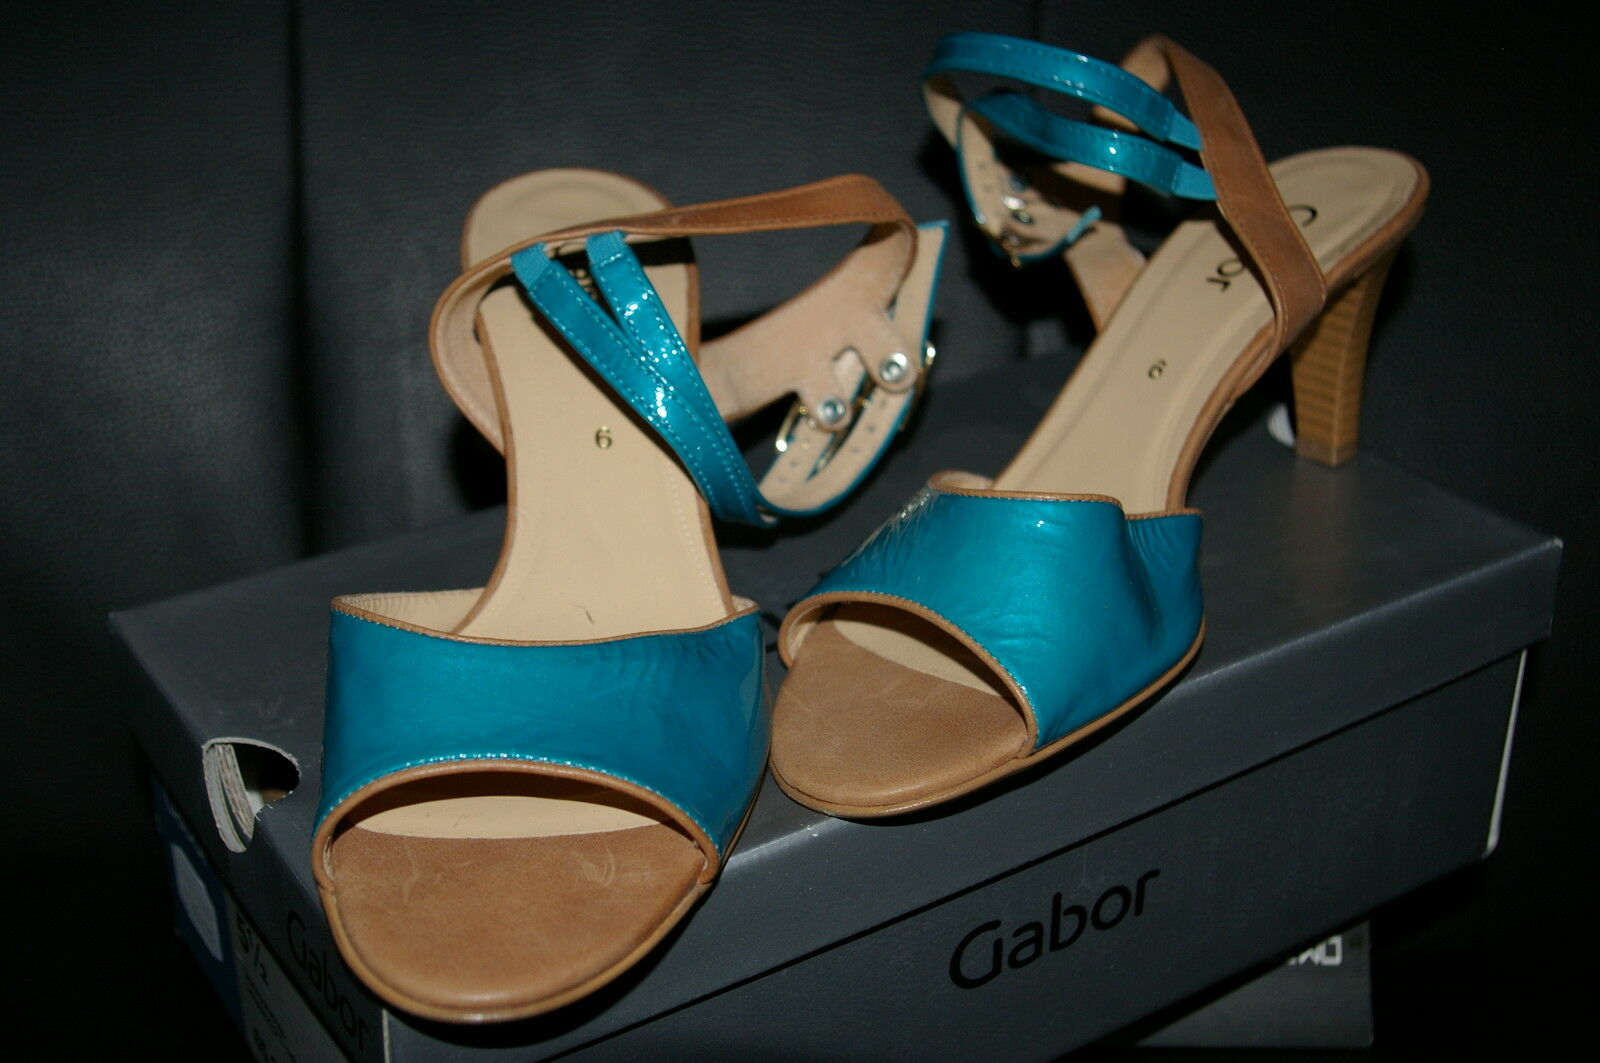 Gabor Strappy Sandals  Patent Leather Turquoise bluee Size 39 1 2 NEW  REAL LEATHER